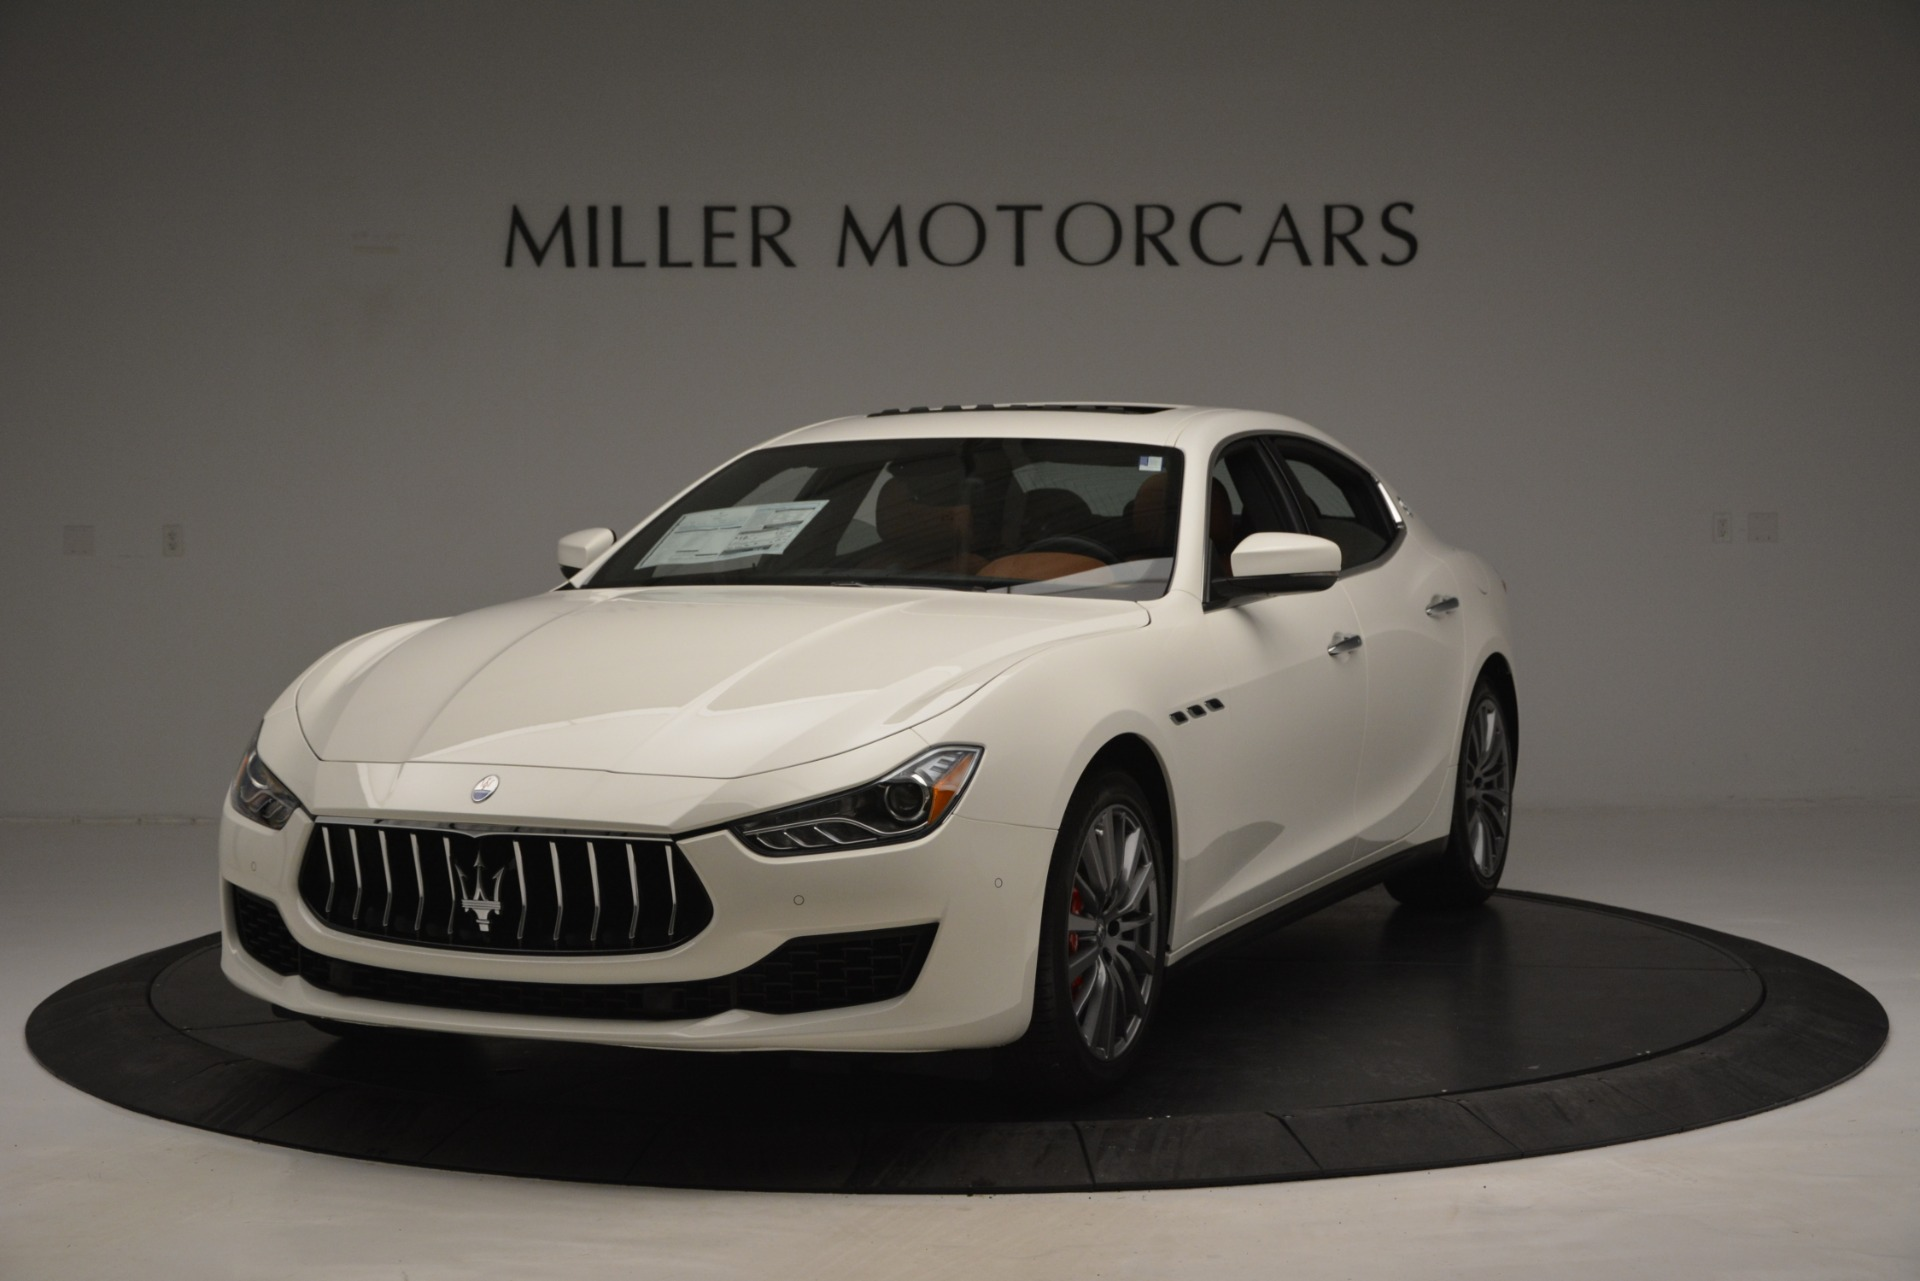 New 2019 Maserati Ghibli S Q4 For Sale In Westport, CT